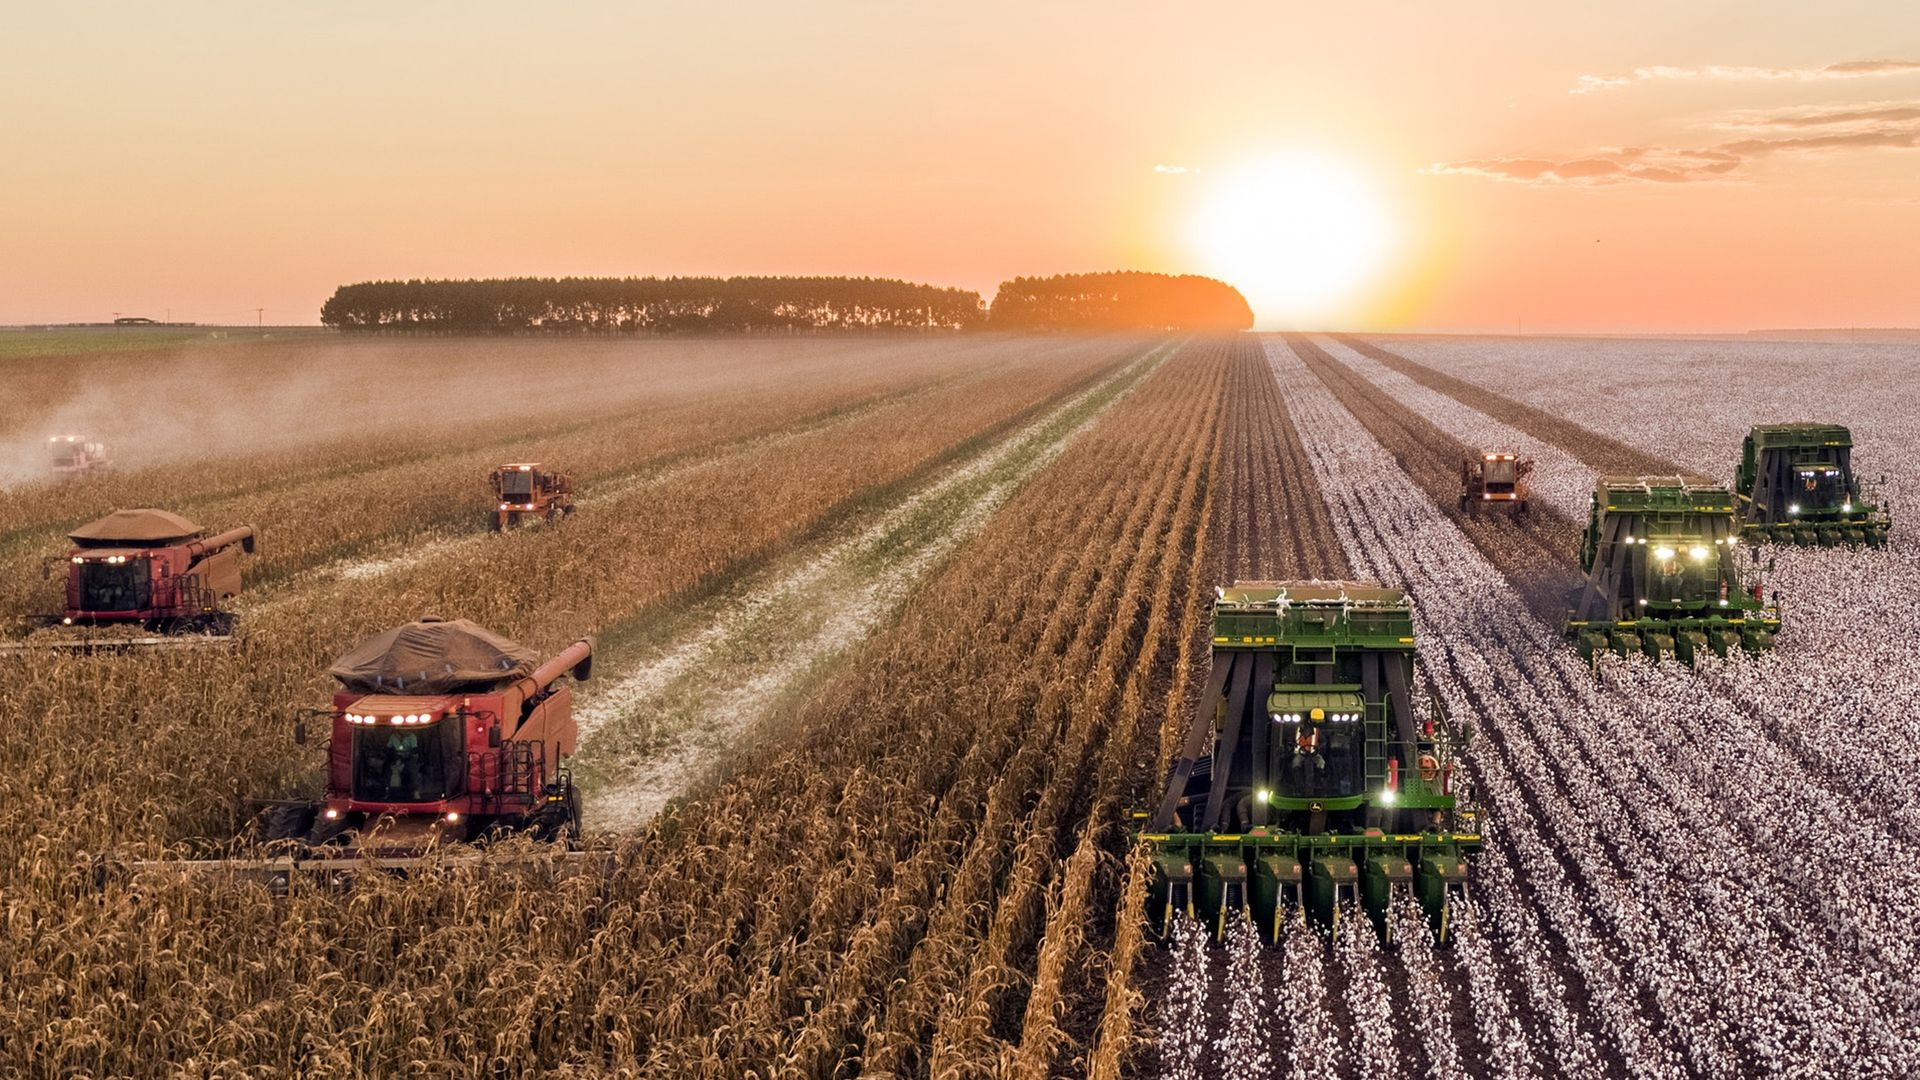 Howstuffworks: The Ultimate Farm Equipment Identification Quiz